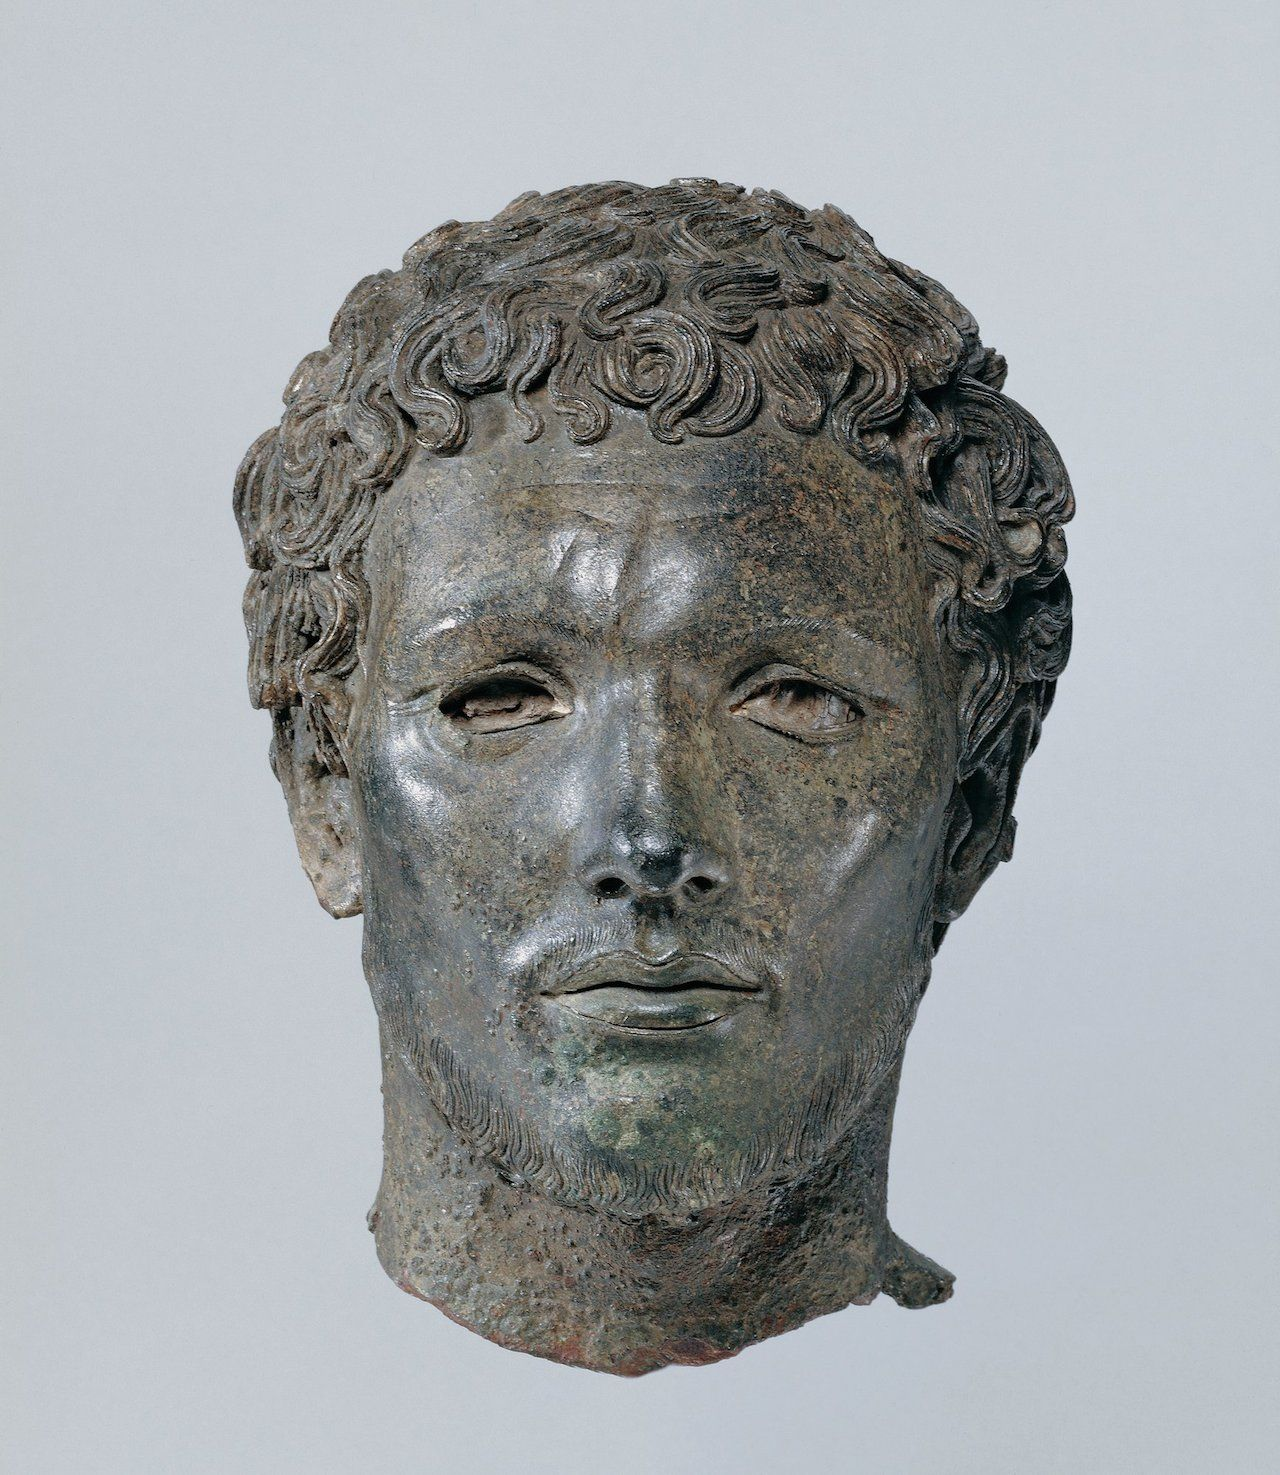 Head (Berber) (300 BCE), Greek bronze & bone (courtesy the Trustees of the British Museum)